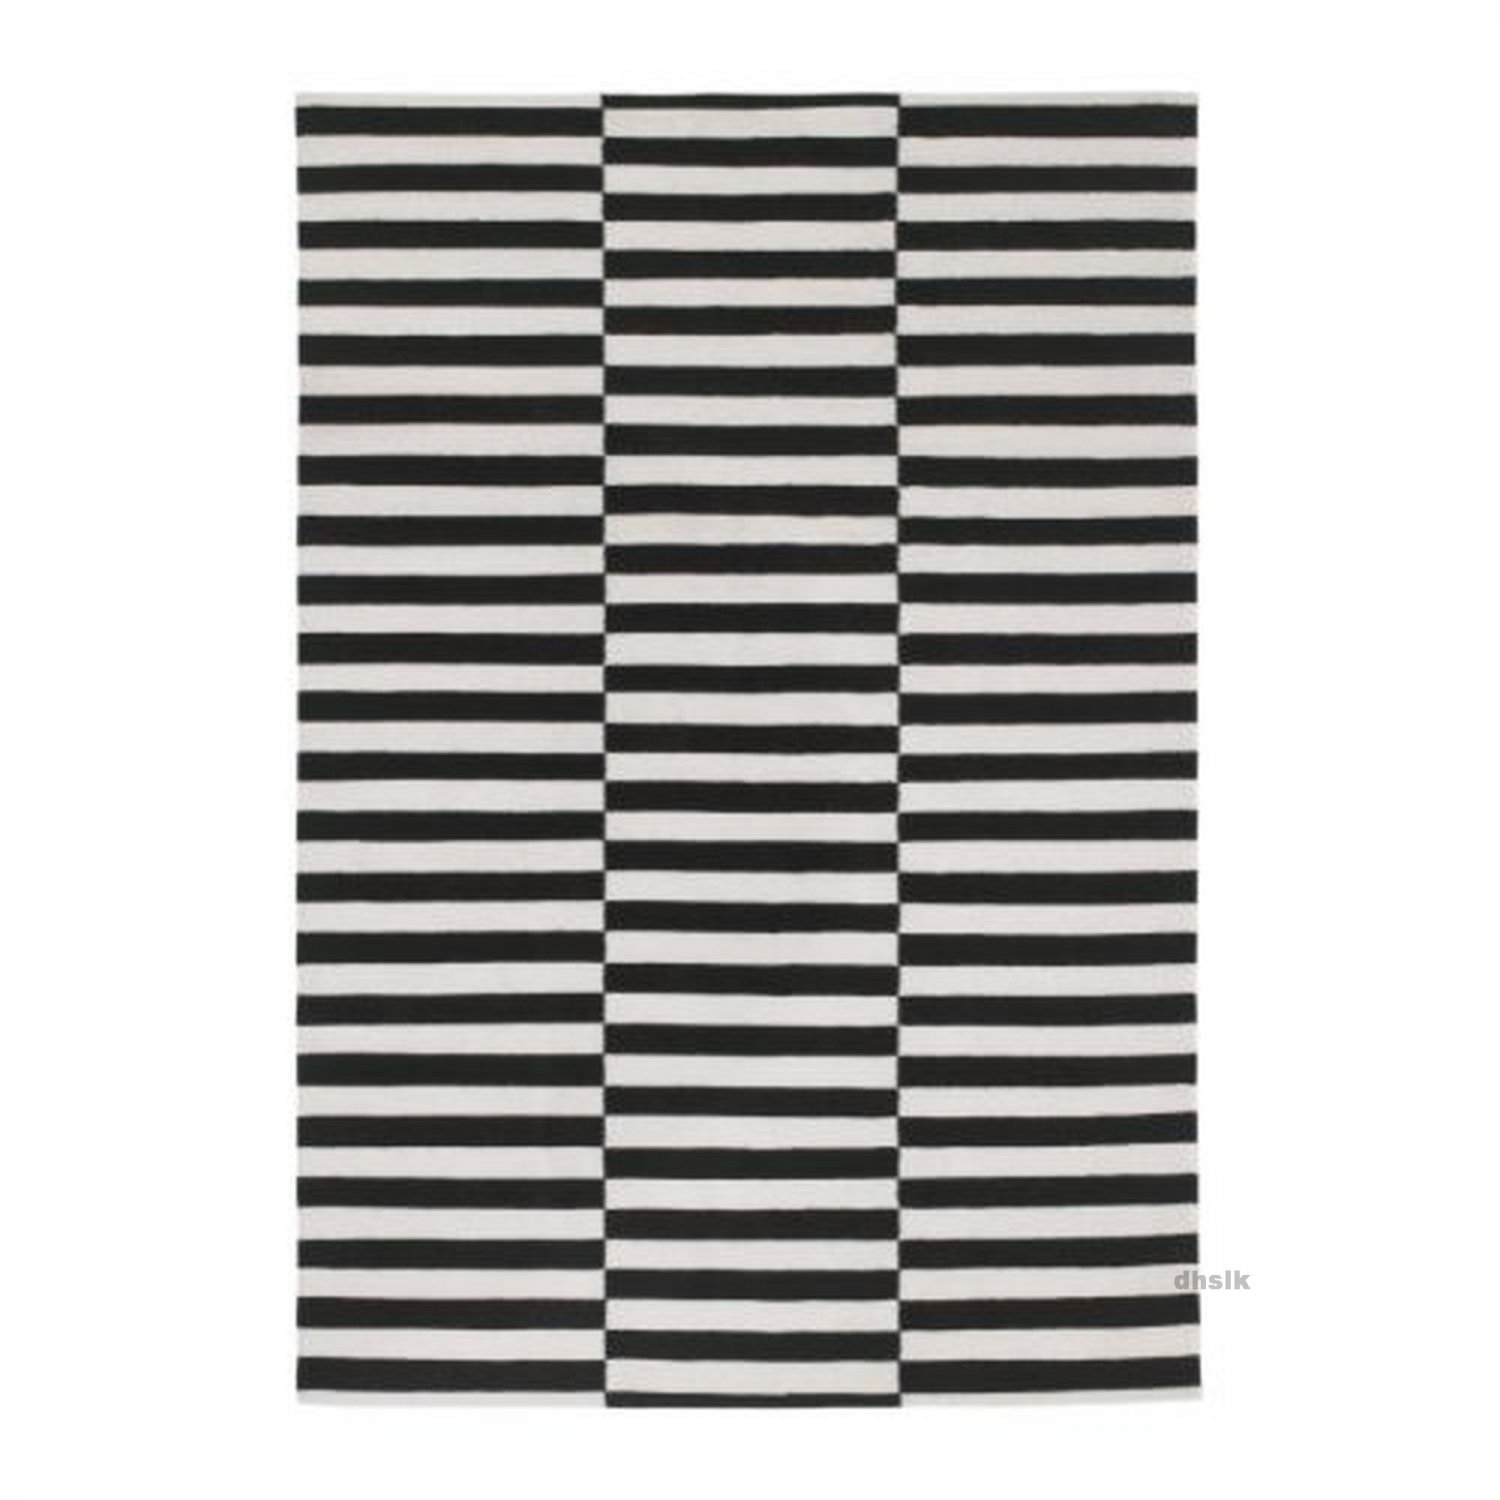 ikea stockholm black white broken stripe area rug mat wool modern flatwoven. Black Bedroom Furniture Sets. Home Design Ideas